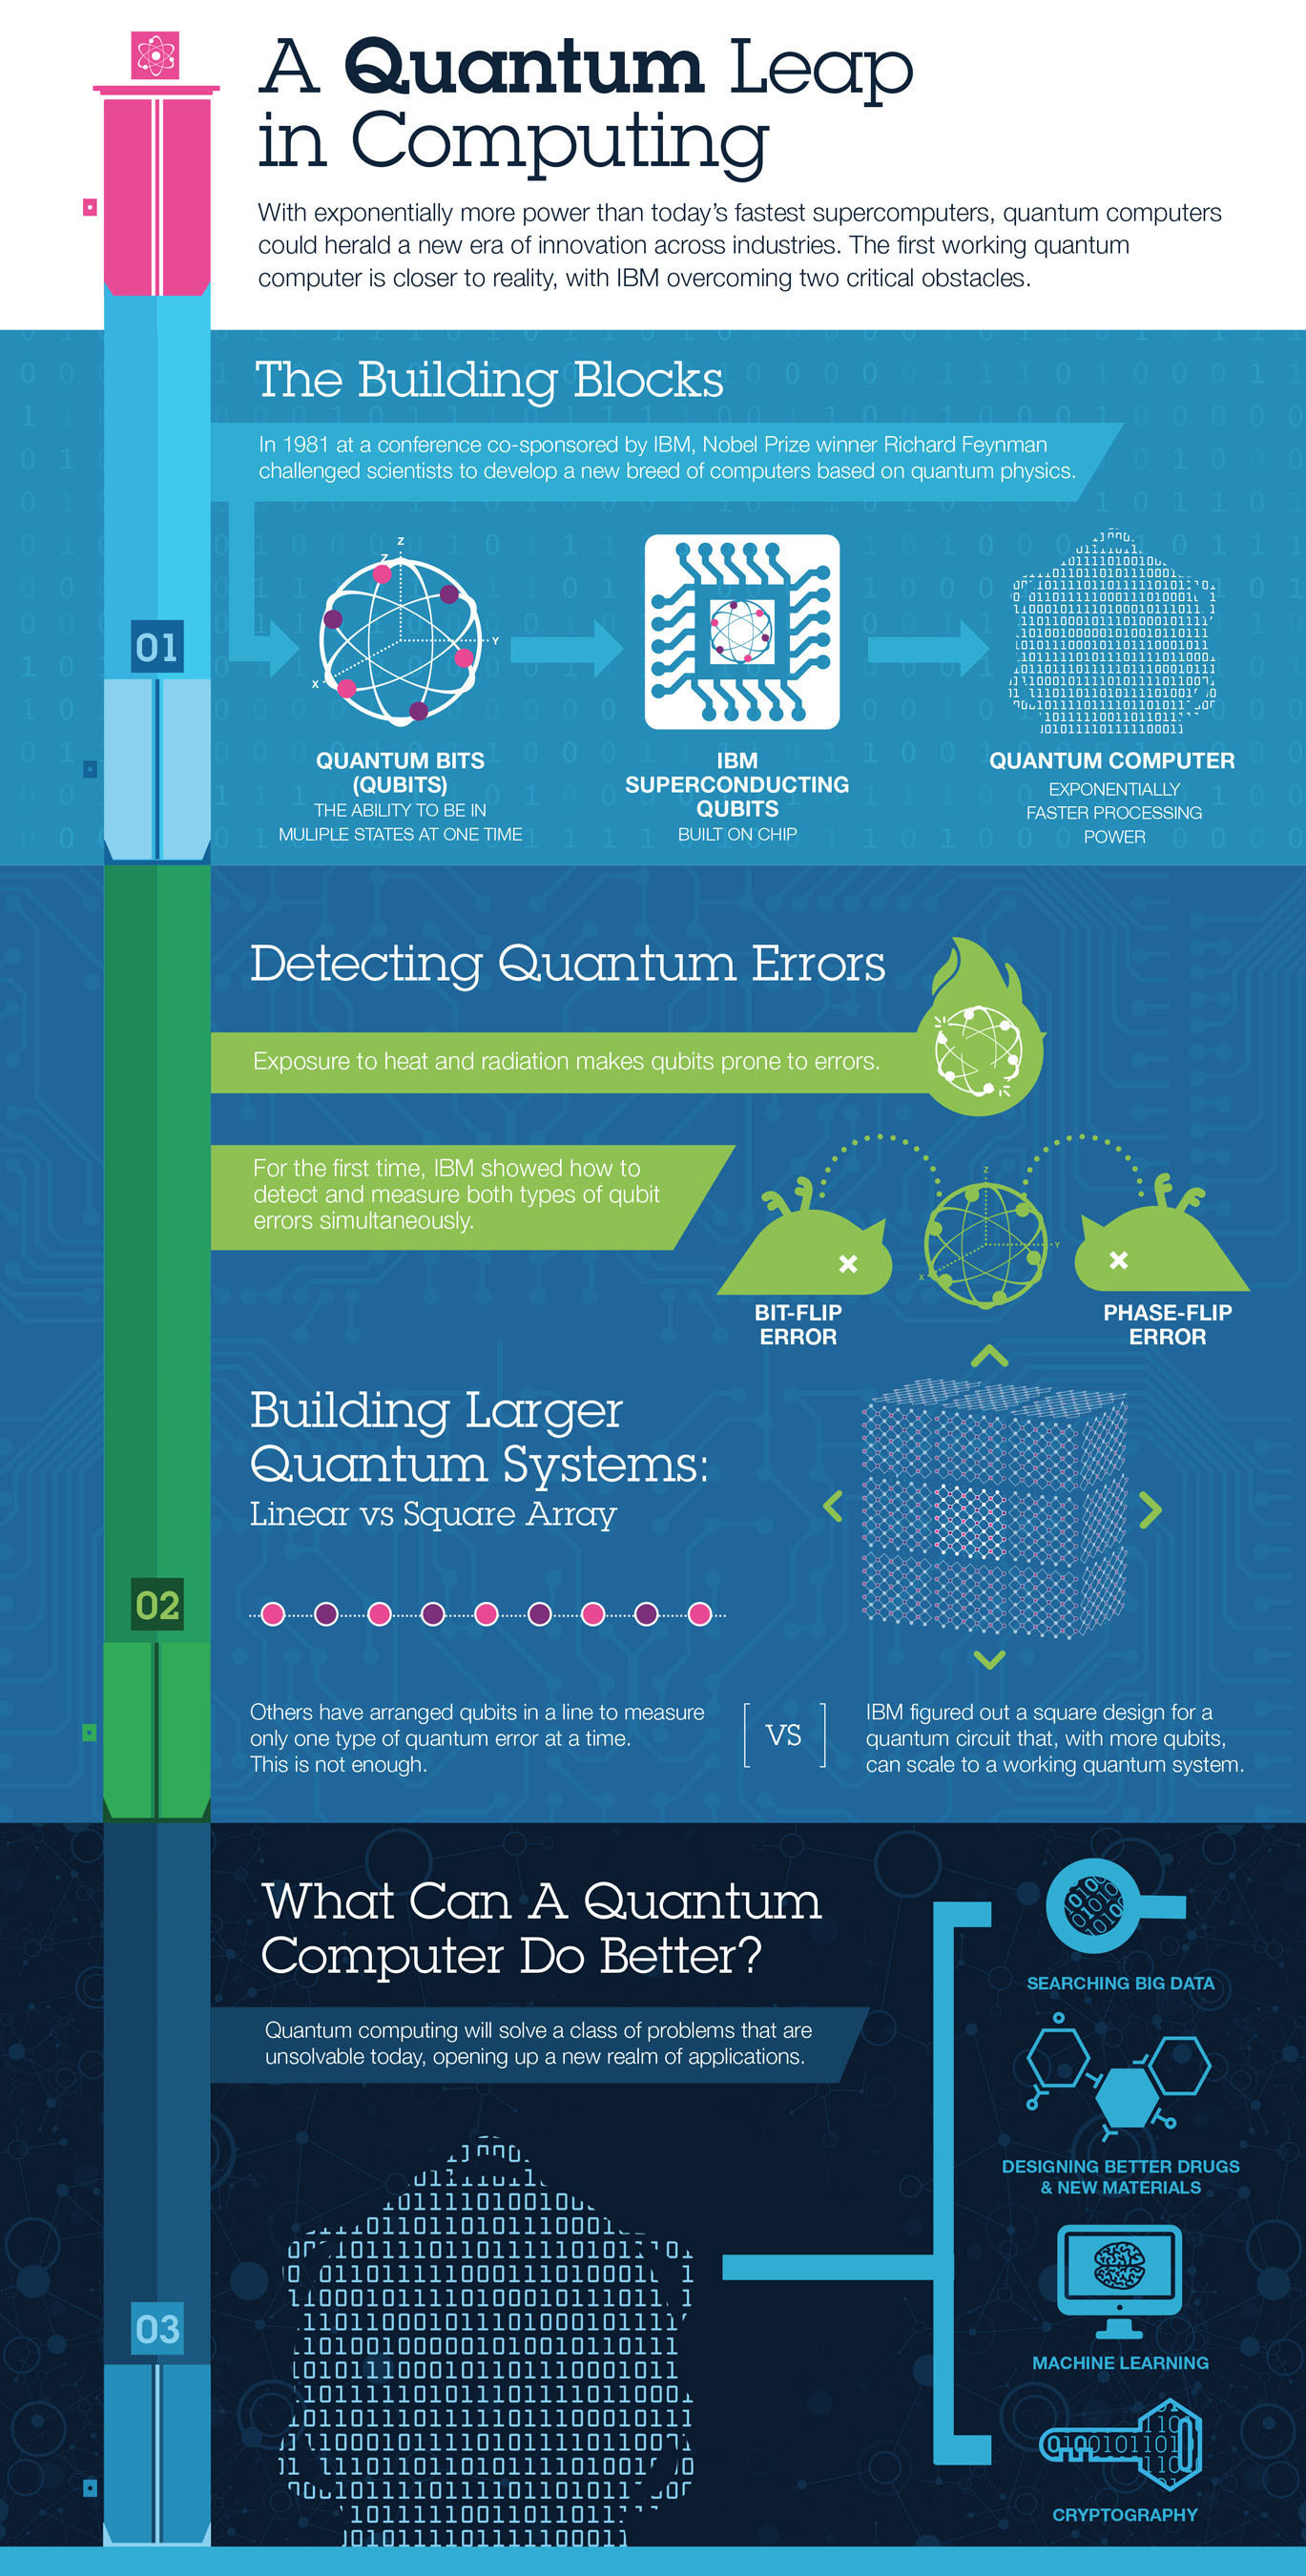 A Quantum Leap in Computing: With exponentially more power than today's fastest supercomputers, quantum computers could herald a new era of innovation across industries. The first working  quantum computer is closer to reality, with IBM overcoming two critical obstacles.